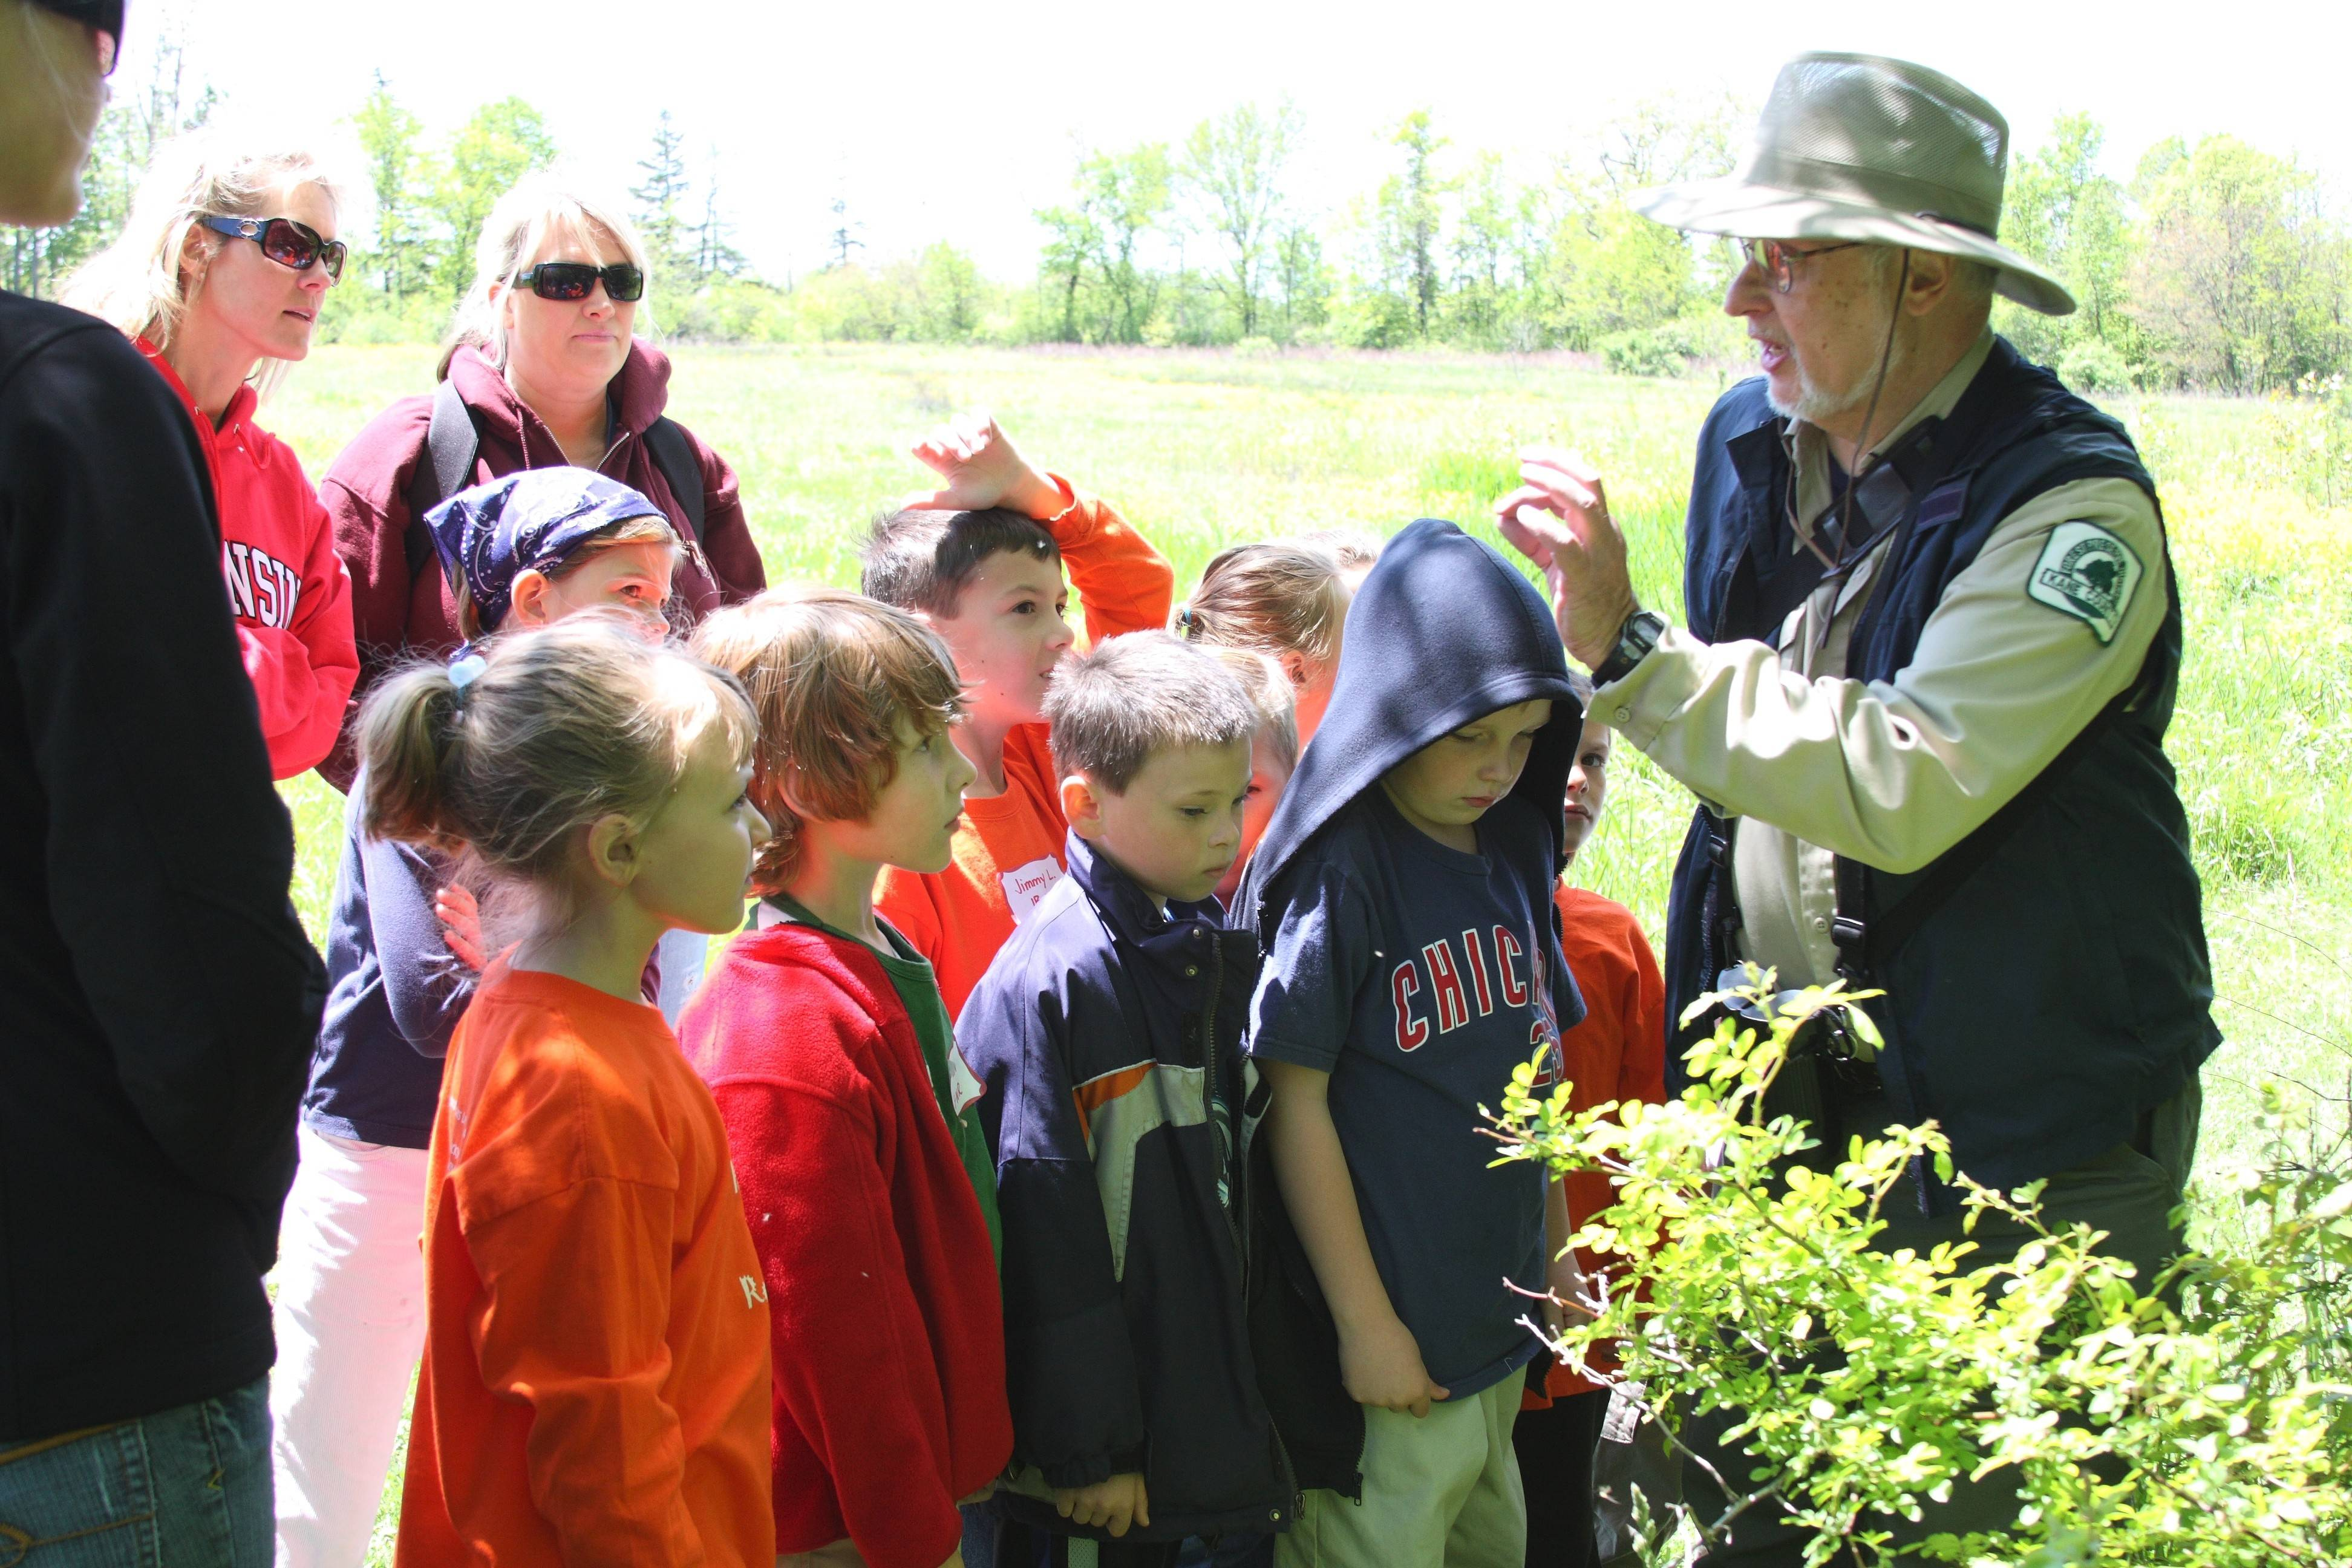 Naturalist Jack Pomatto leads participants on a wildflower hike. He was known for his ability to connect with nature lovers of all ages.